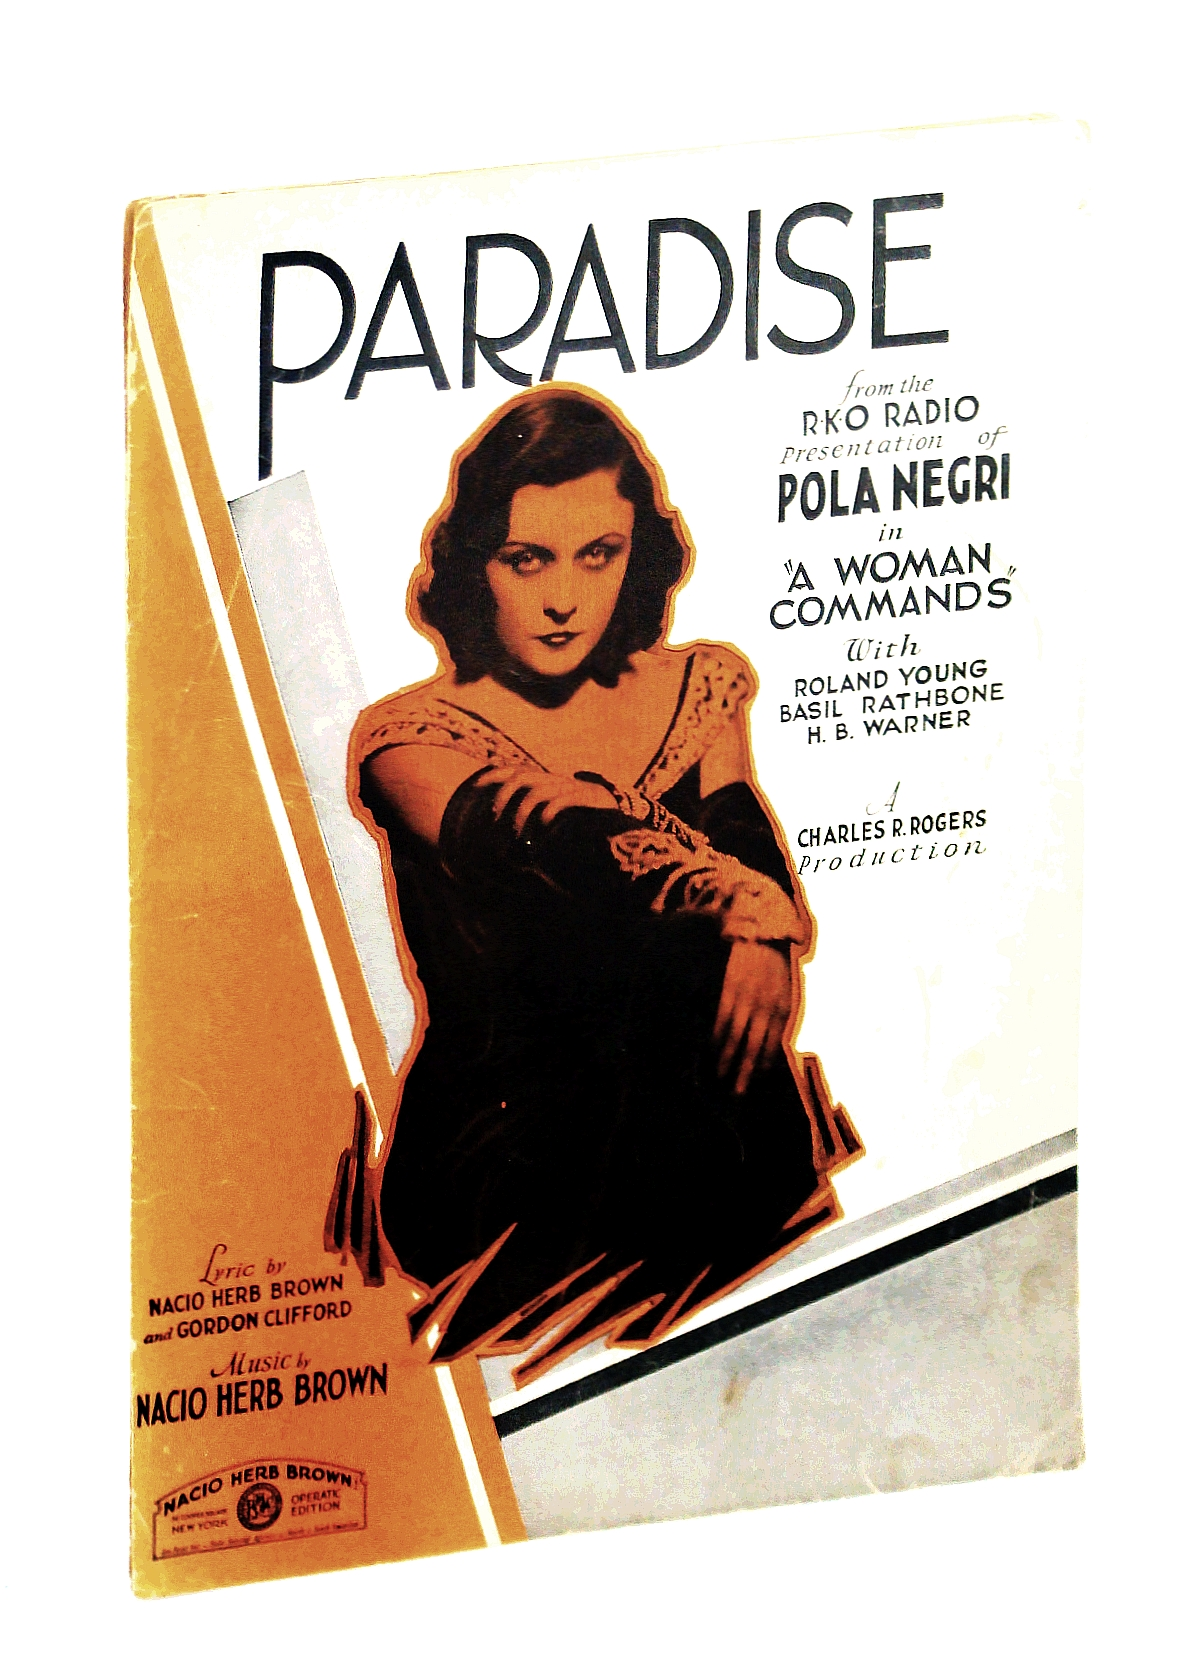 Image for PARADISE (1931 Nacio Herb Brown and Gordon Clifford SHEET MUSIC) excellent condition from the film A WOMAN COMMANDS with Pola Negri (pictured!)